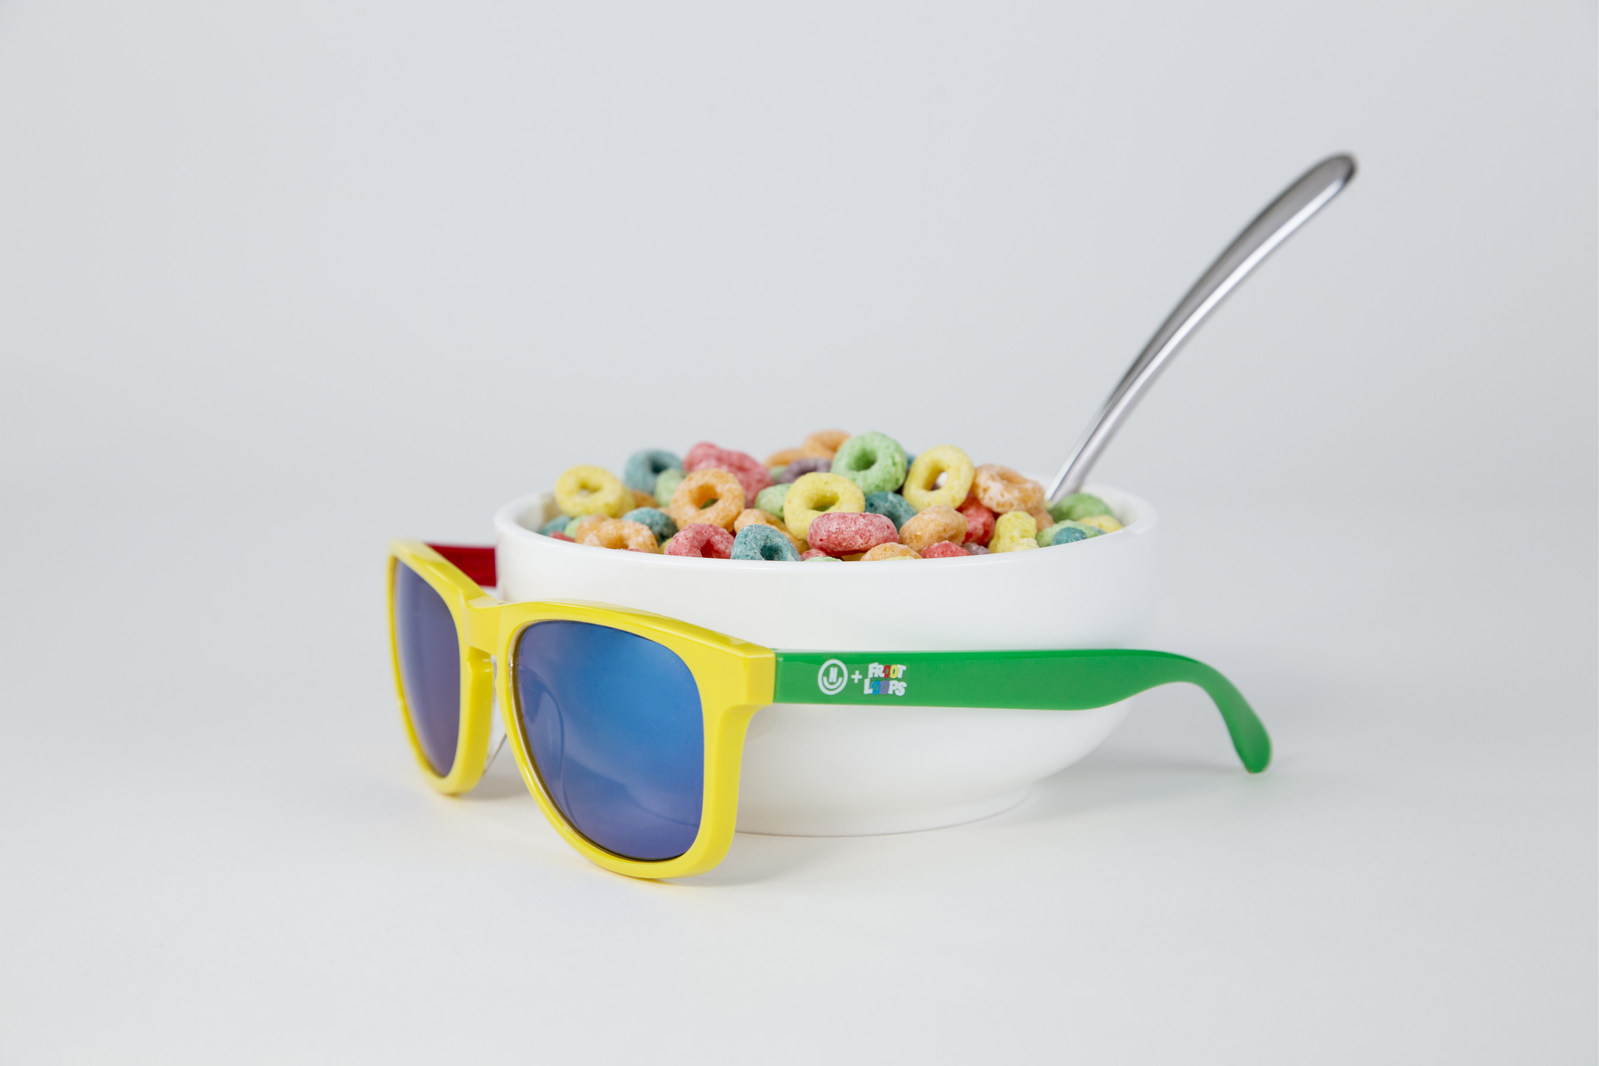 Glasses and Bowl